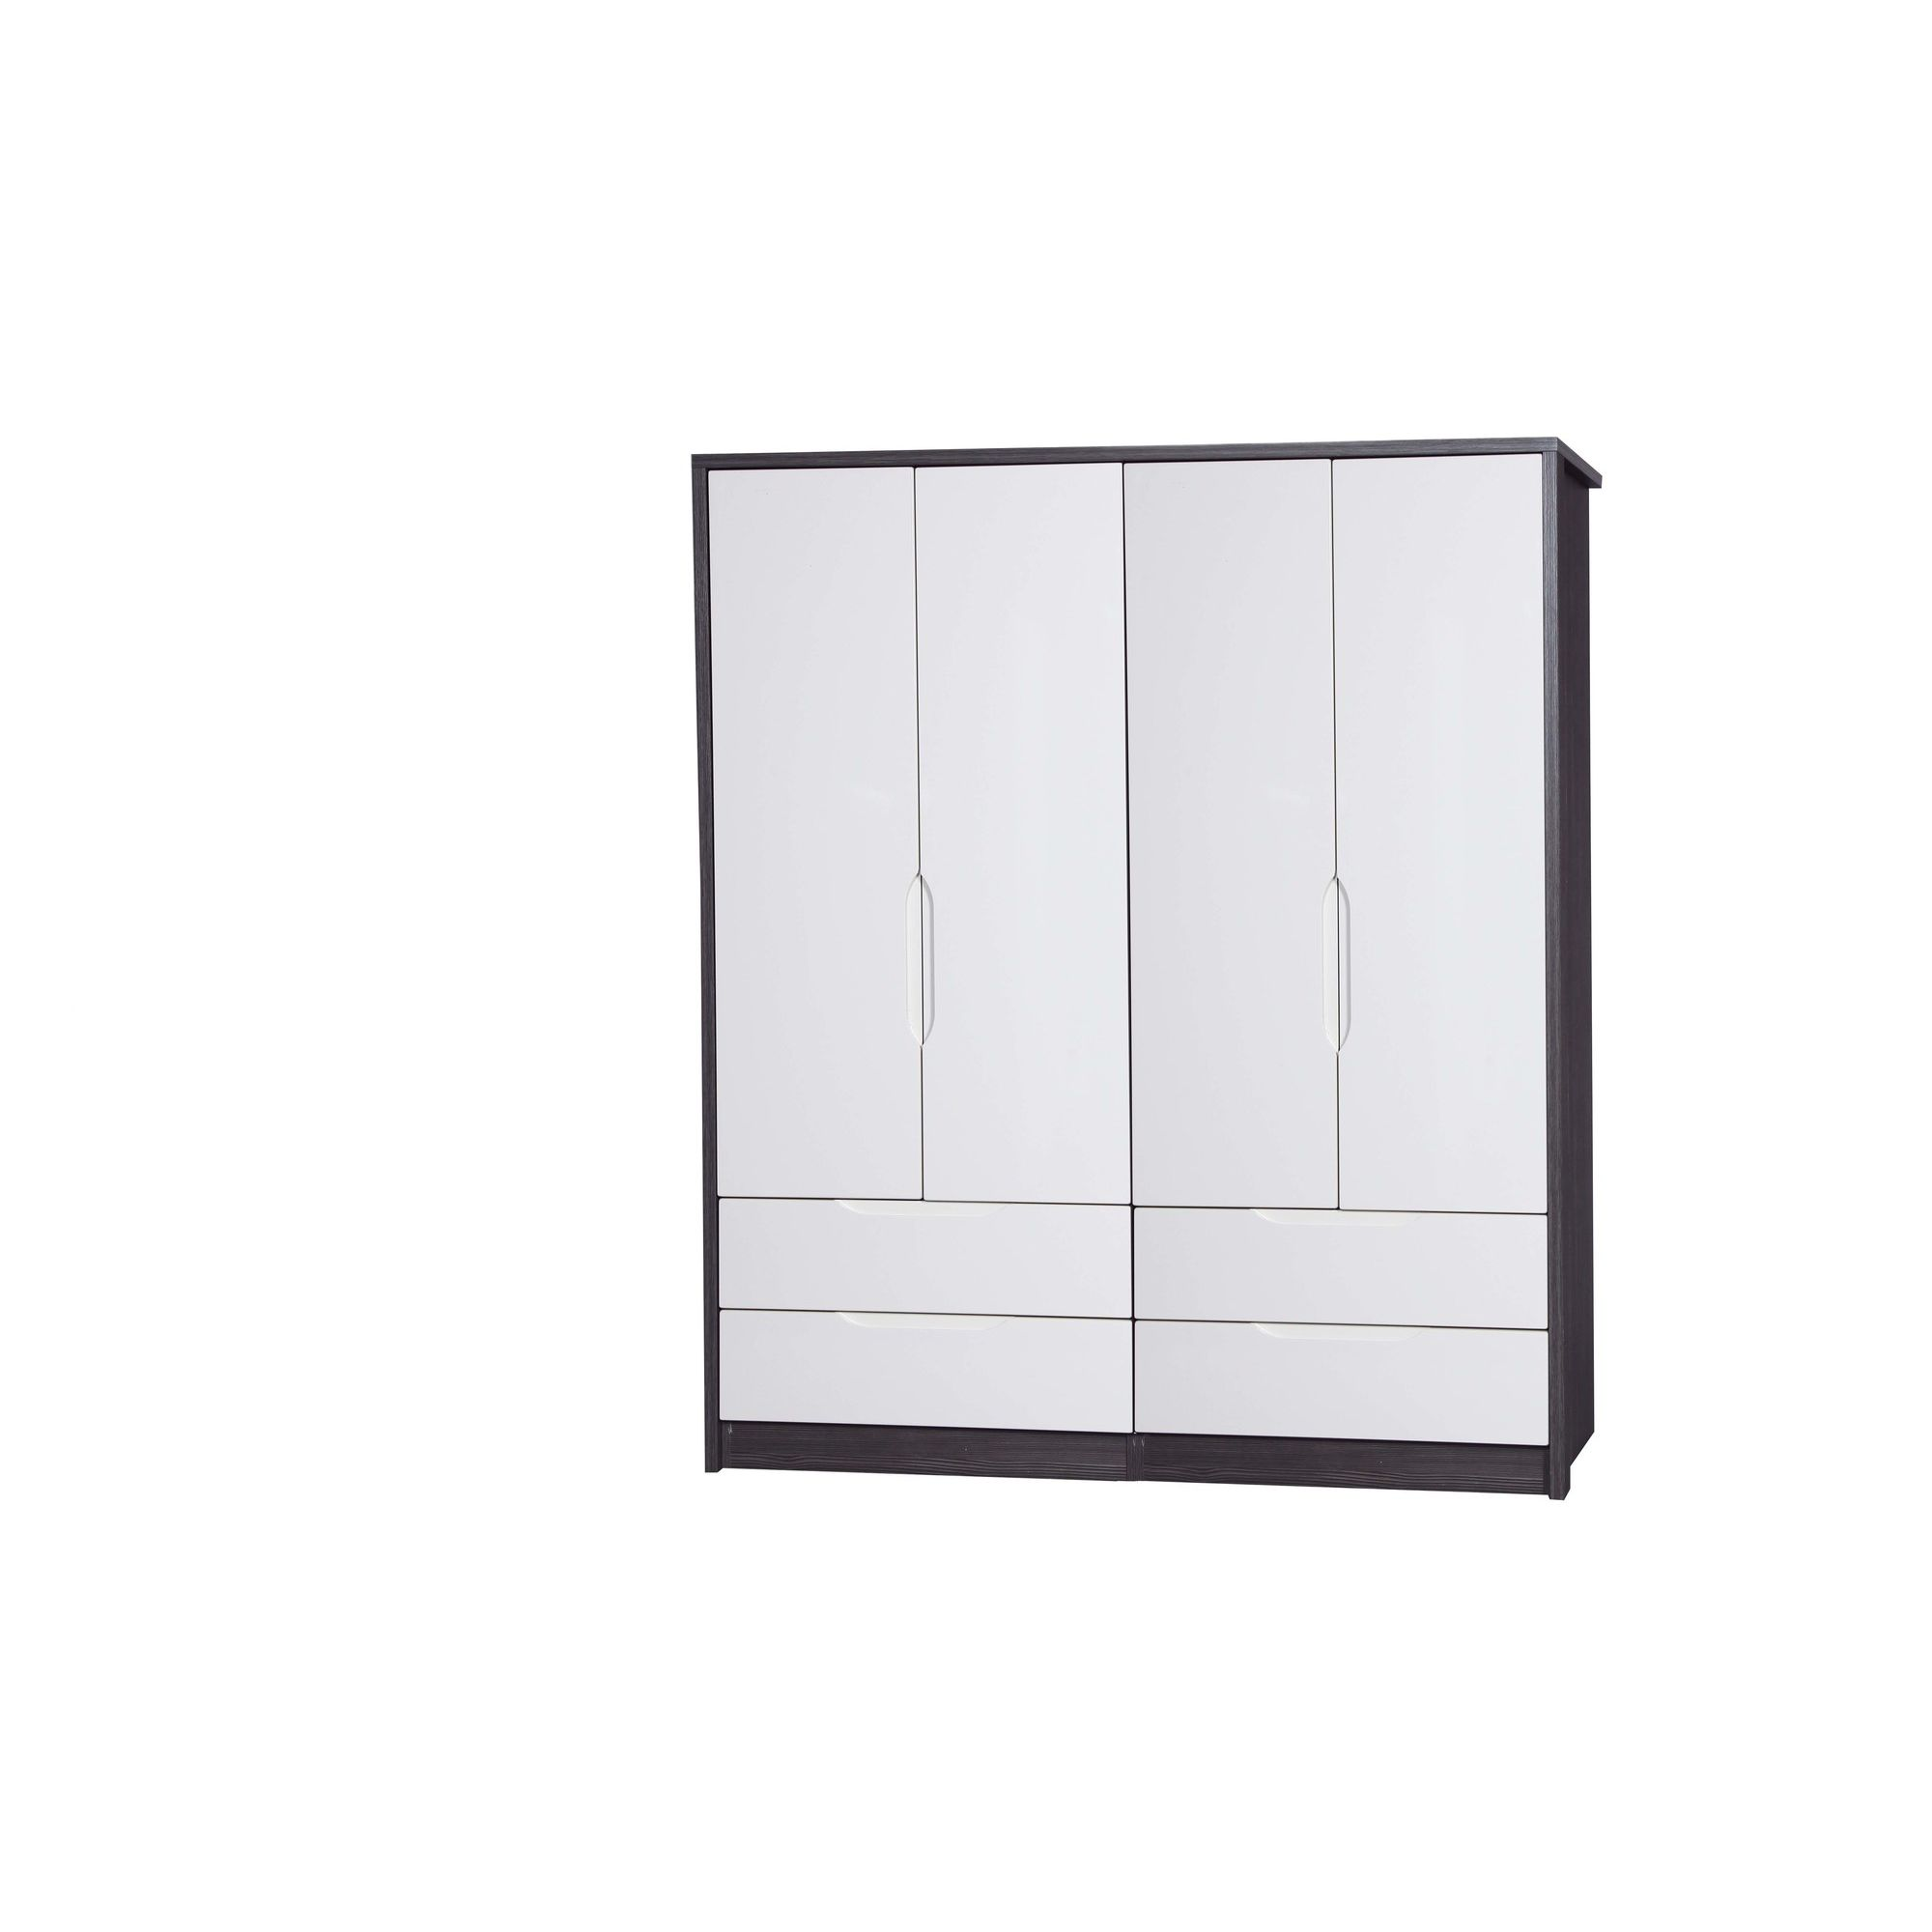 Alto Furniture Avola 4 Door Combi Wardrobe - Grey Avola Carcass With Cream Gloss at Tesco Direct